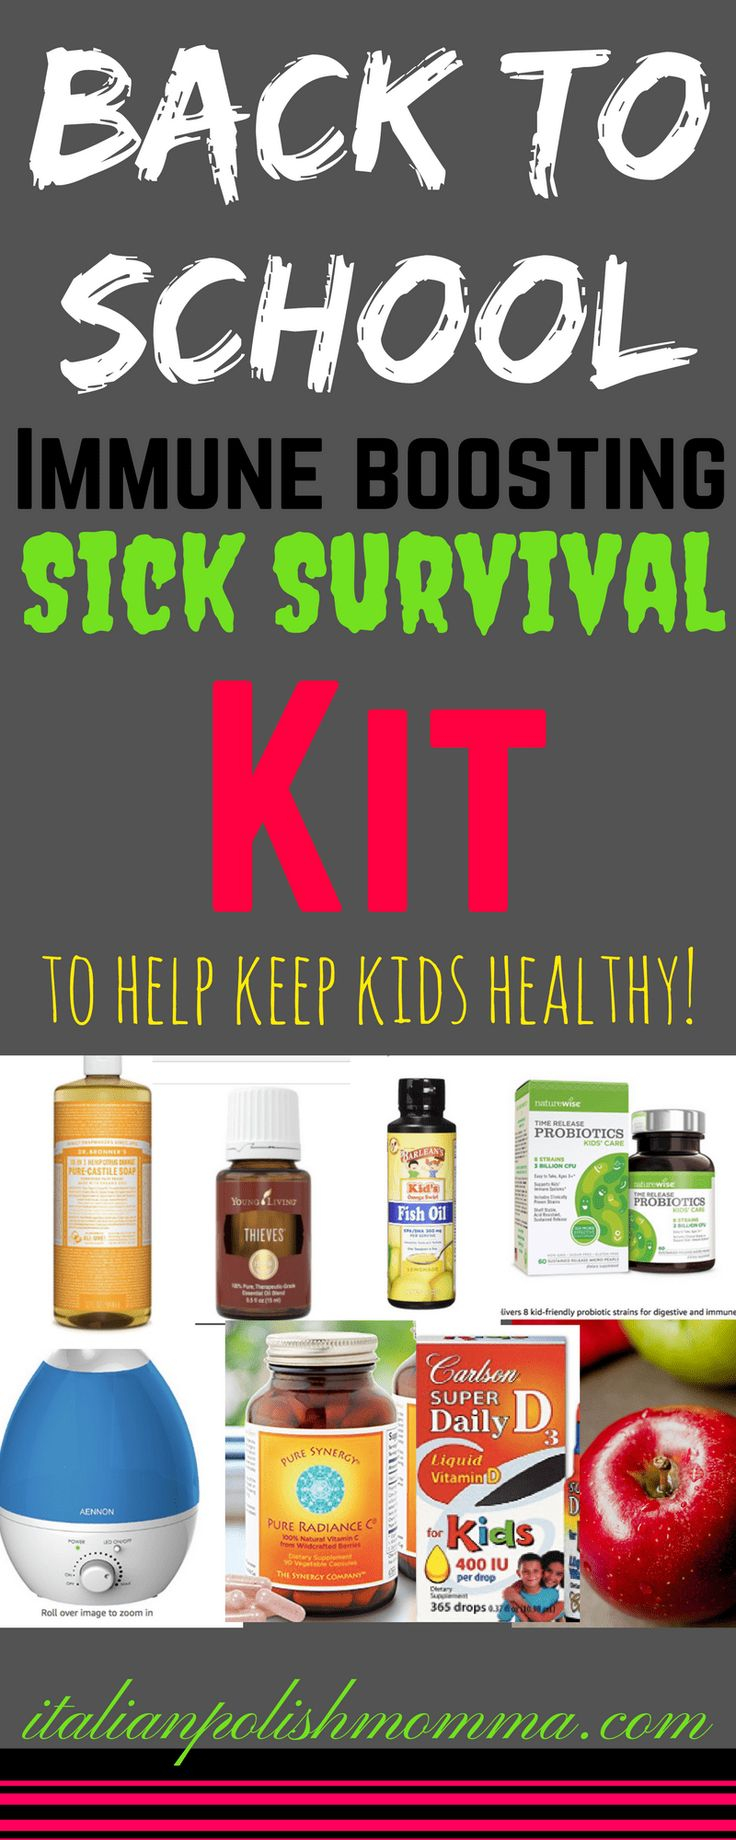 Back to school immune boosting vitamin sick survival kit for kids